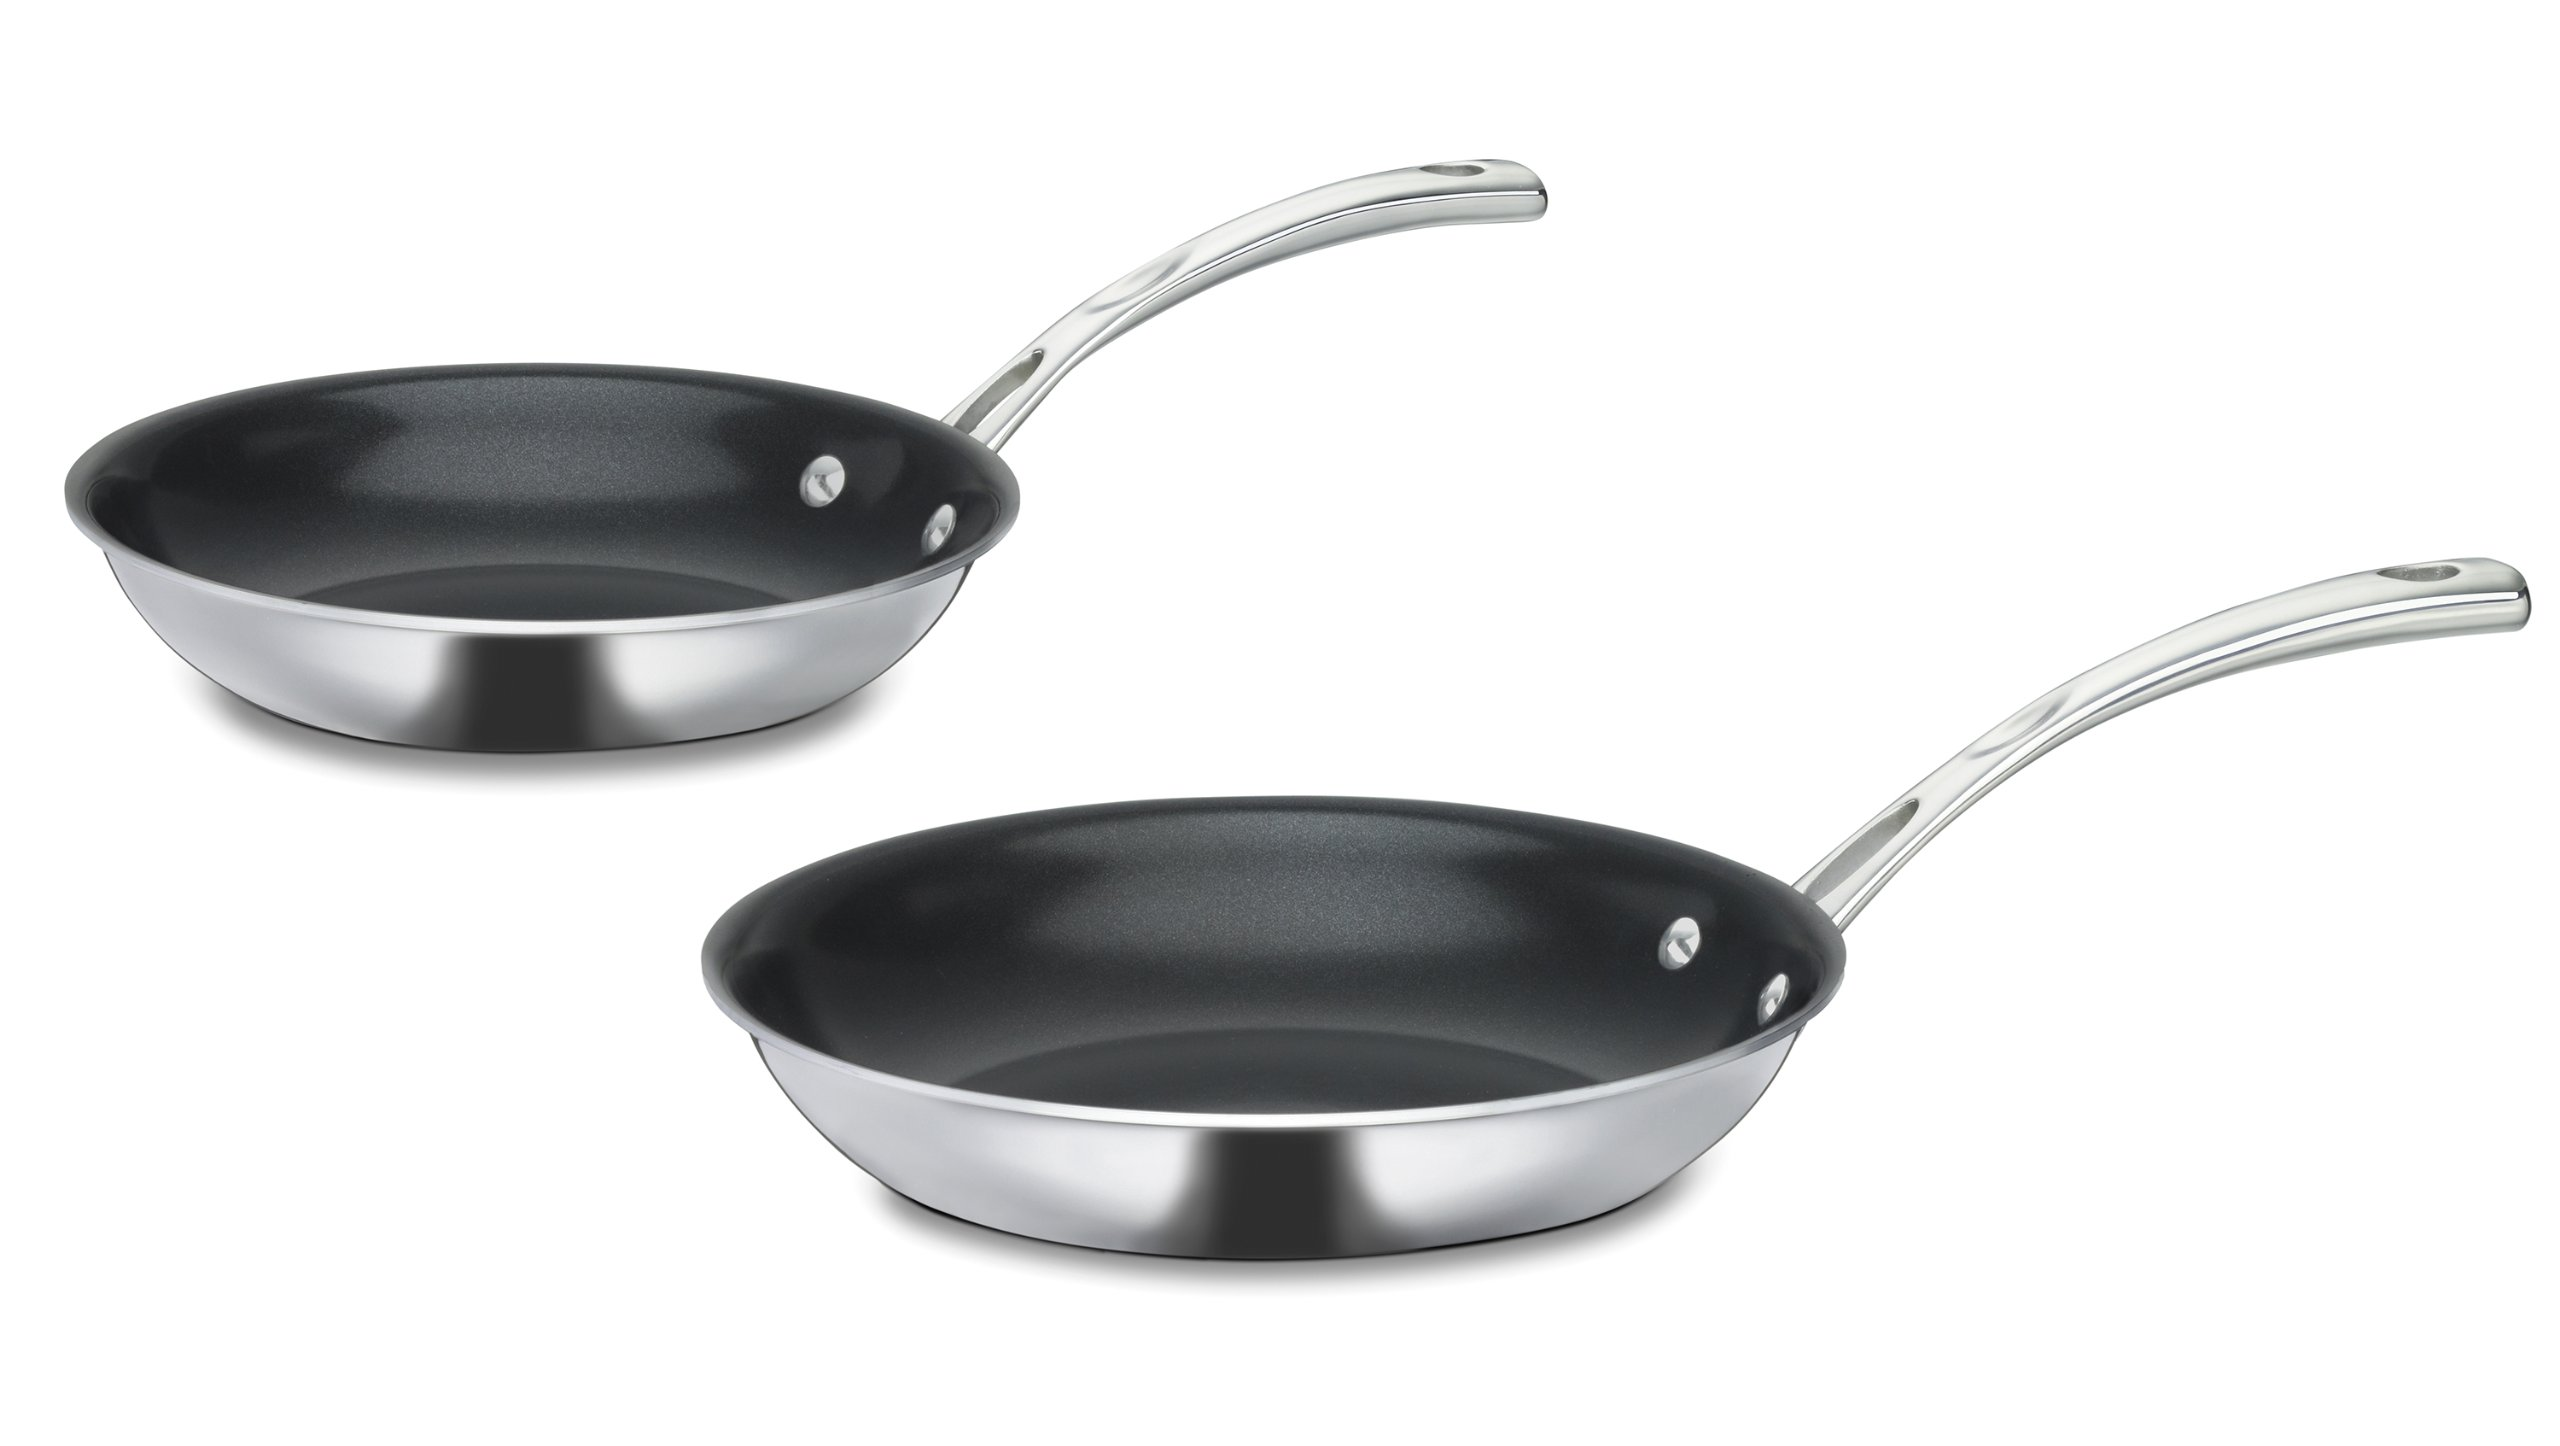 Cuisinart FCT22-911NS French Classic 2-Piece Non-Stick Fry Pan Set, 9-Inch and 11-Inch